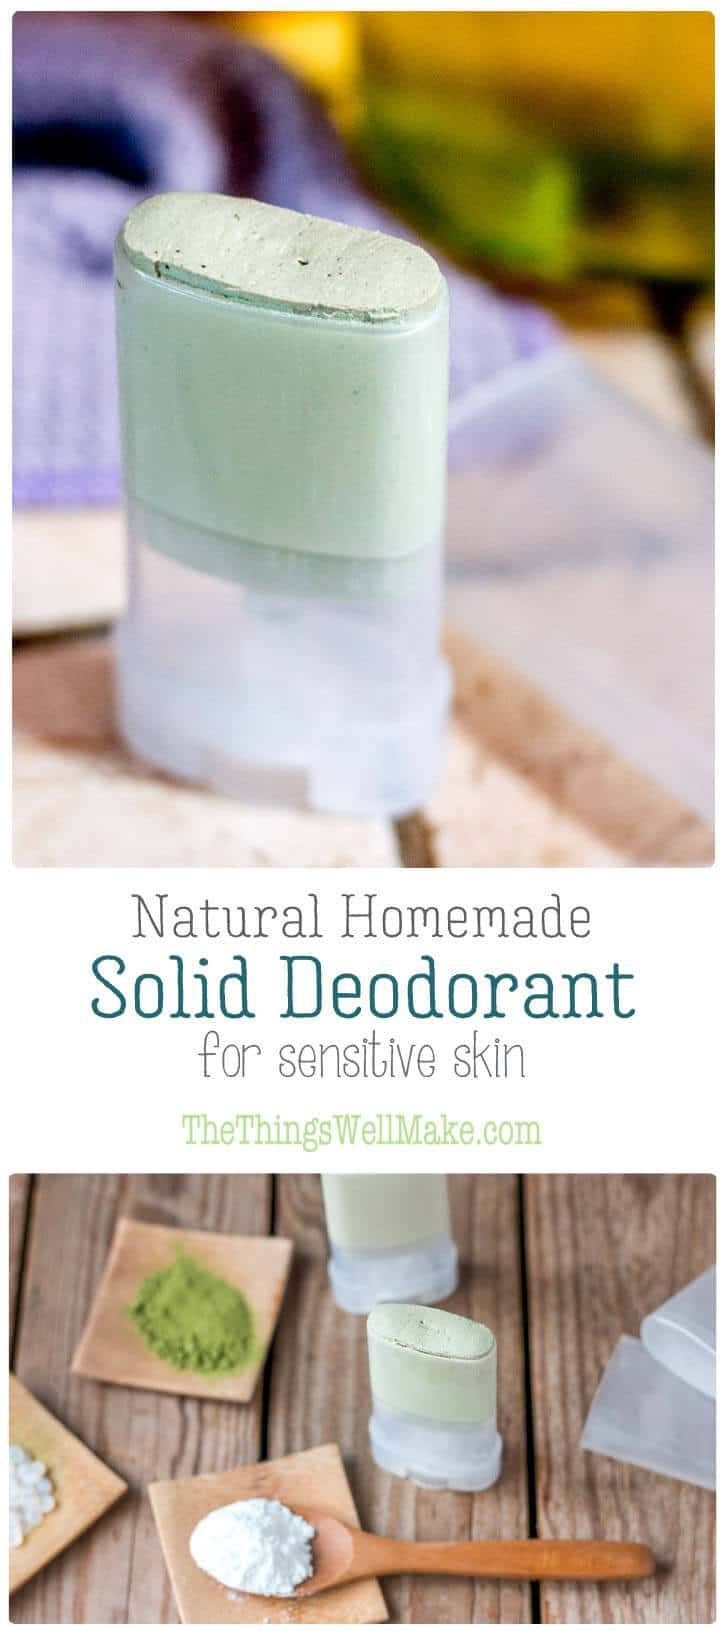 Soothing, yet effective, this natural homemade deodorant stick works without baking soda nor coconut oil, and uses zinc to help combat odors for those with sensitive skin. via @thethingswellmake